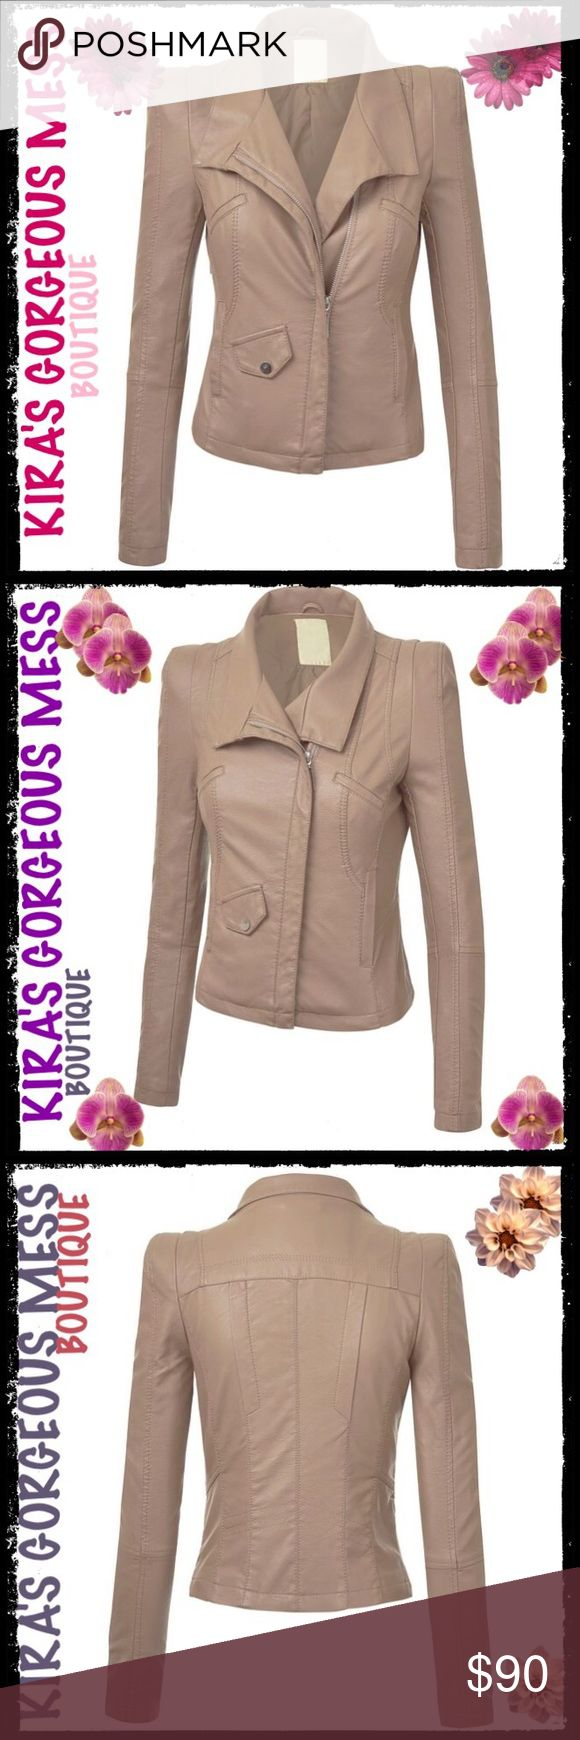 BNWT BIKER JACKET QUILTED KHAKI COLOR BNWT BIKER JACKET QUILTED KHAKI COLOR 100% Polyester; Slightly Padded Shoulder; Medium Weight/Fully Lined; Exposed Zipper Details---💋ONLY ONE MEDIUM LEFT💋 Boutique Jackets & Coats